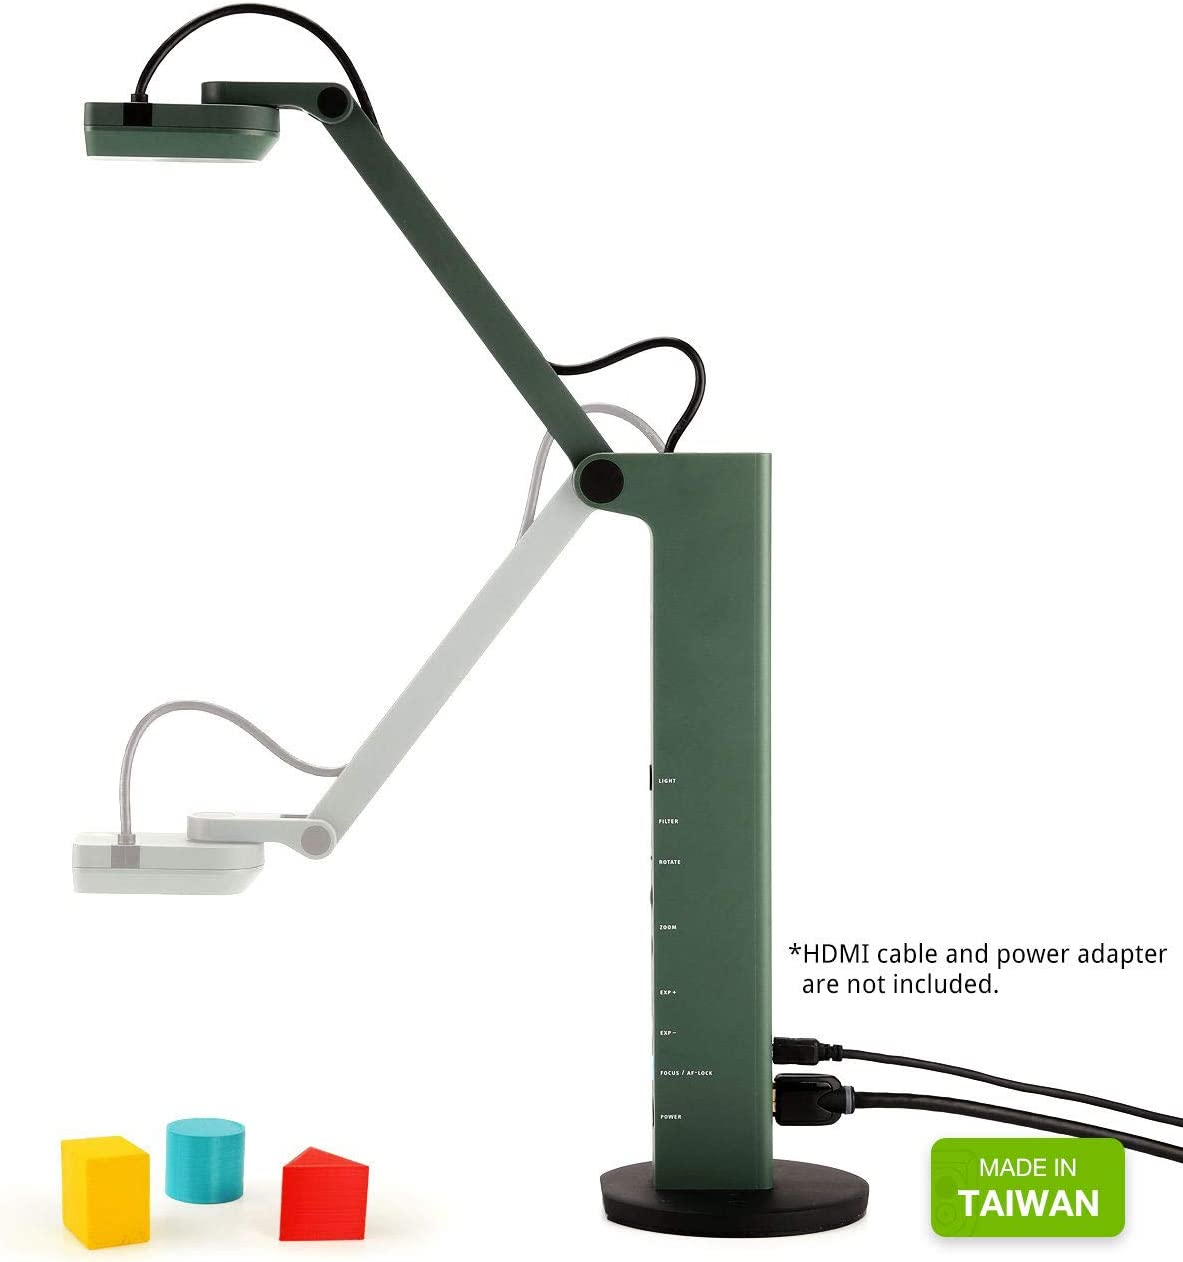 Ipevo VZ-R HDMI/USB Dual Mode 8MP Document Camera — Mac OS, Windows, Chromebook Compatible for Live Demo, Web Conferencing, Remote Teaching, Distance Learning, 8 Megapixel (5-883-4-01-00) : Camera & Photo